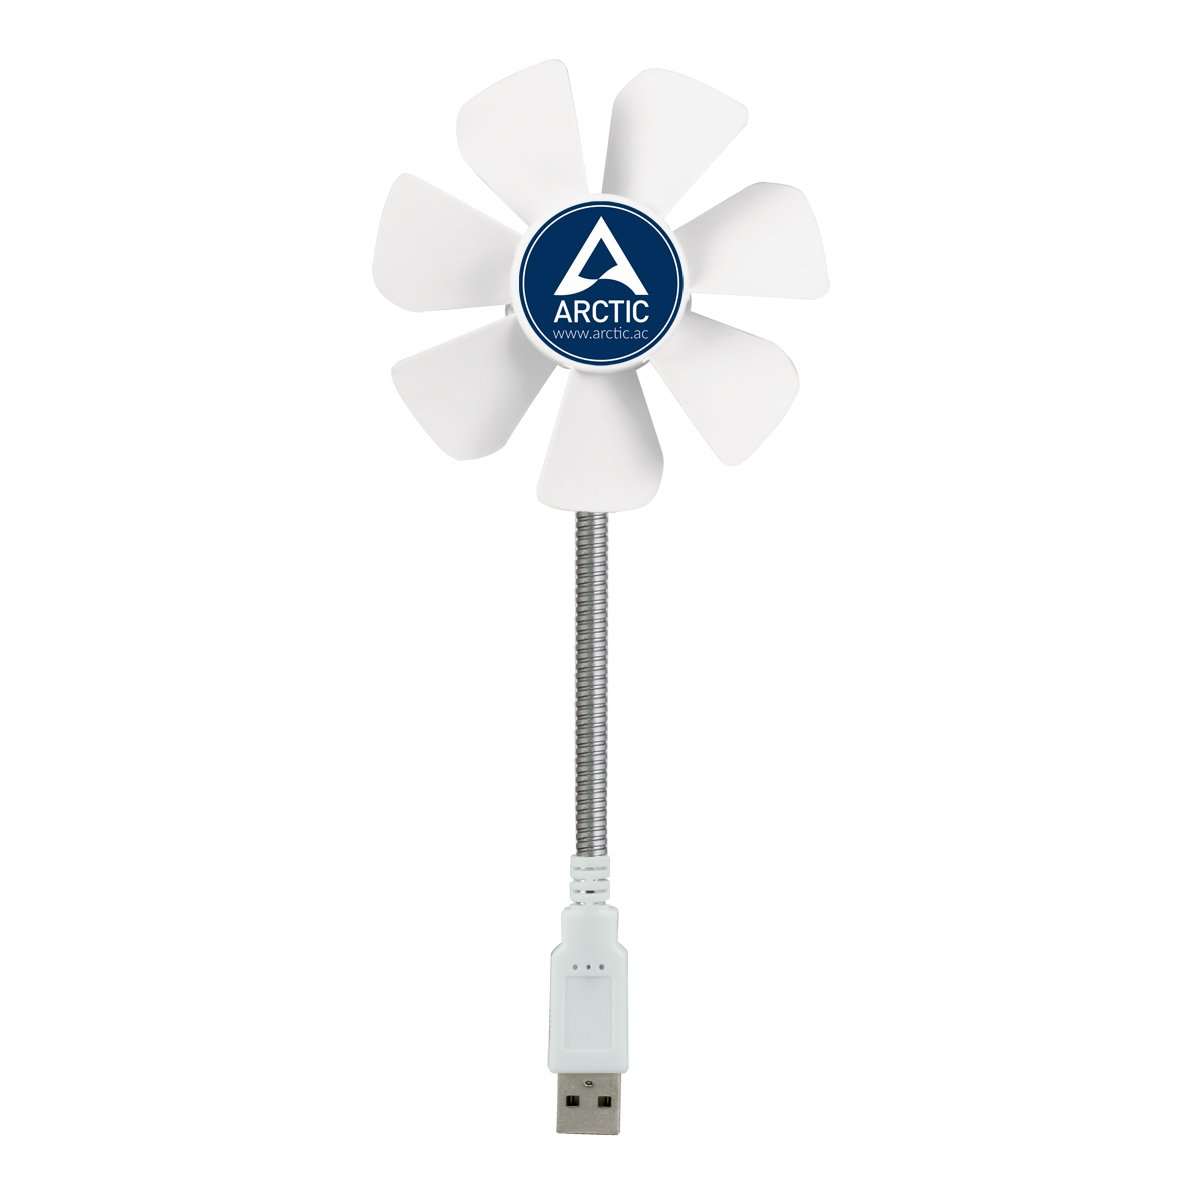 ARCTIC Breeze Mobile Breeze Mobile USB-Powered 92mm Portable Fan, Portable Cooling Solution, Quiet Fan, White ABACO-BZG00-010000